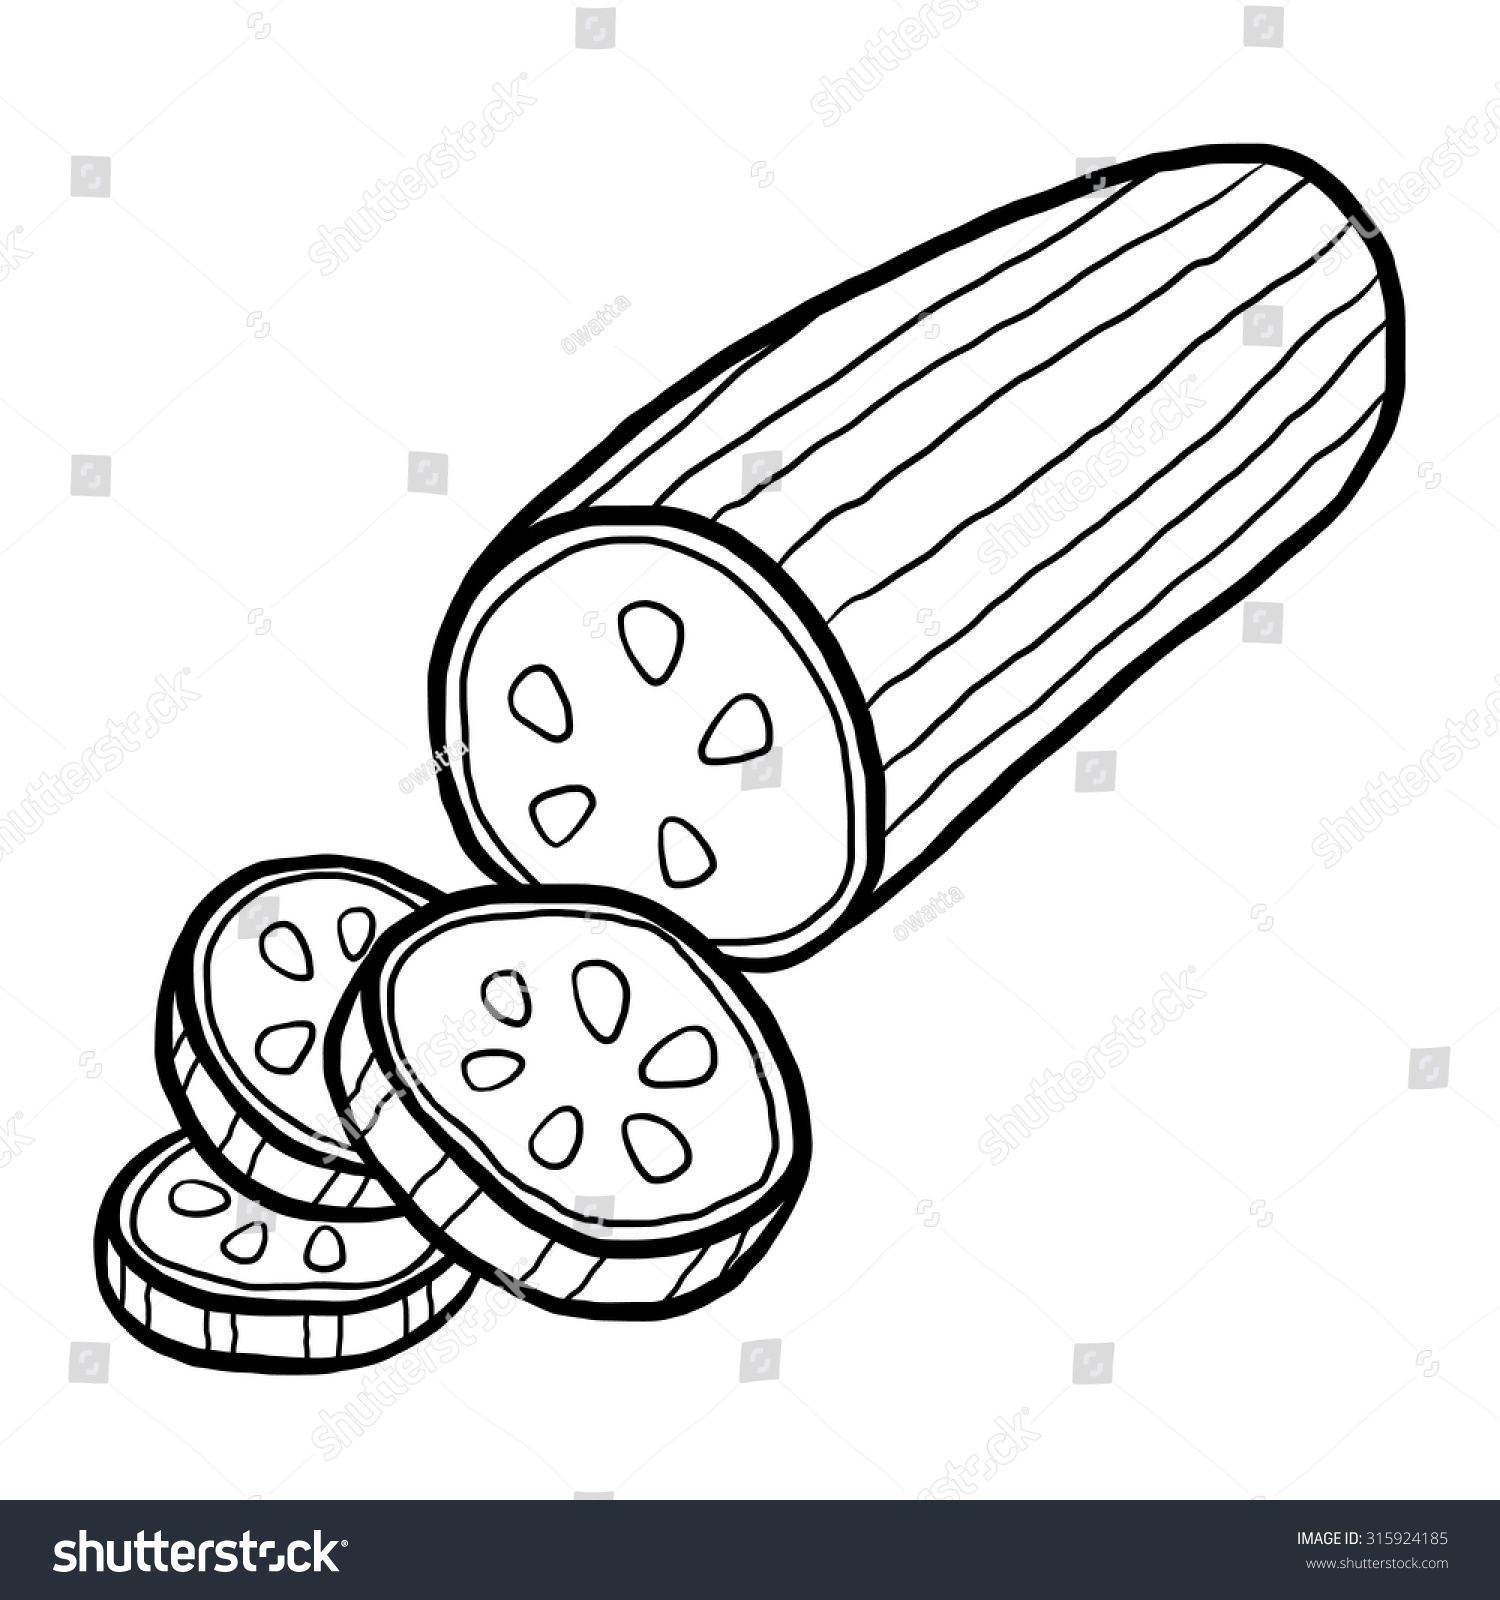 cucumber / cartoon vector and illustration, black and white, hand drawn,  sketch style - Cucumber Slice PNG Black And White